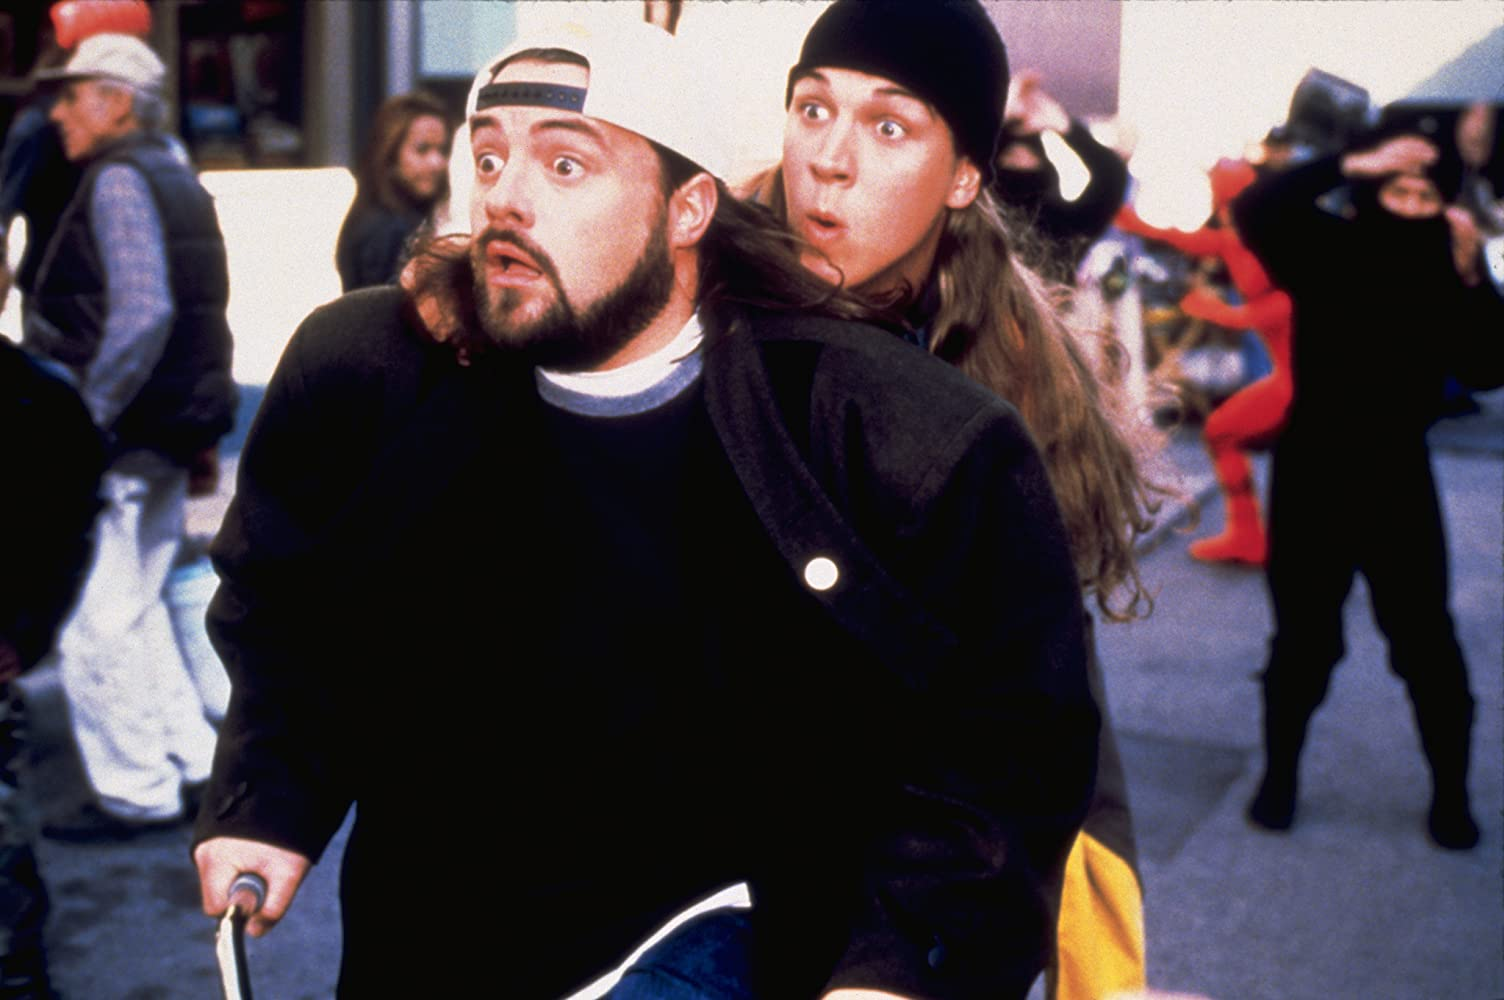 Kevin Smith and Jason Mewes in Jay and Silent Bob Strike Back (2001)